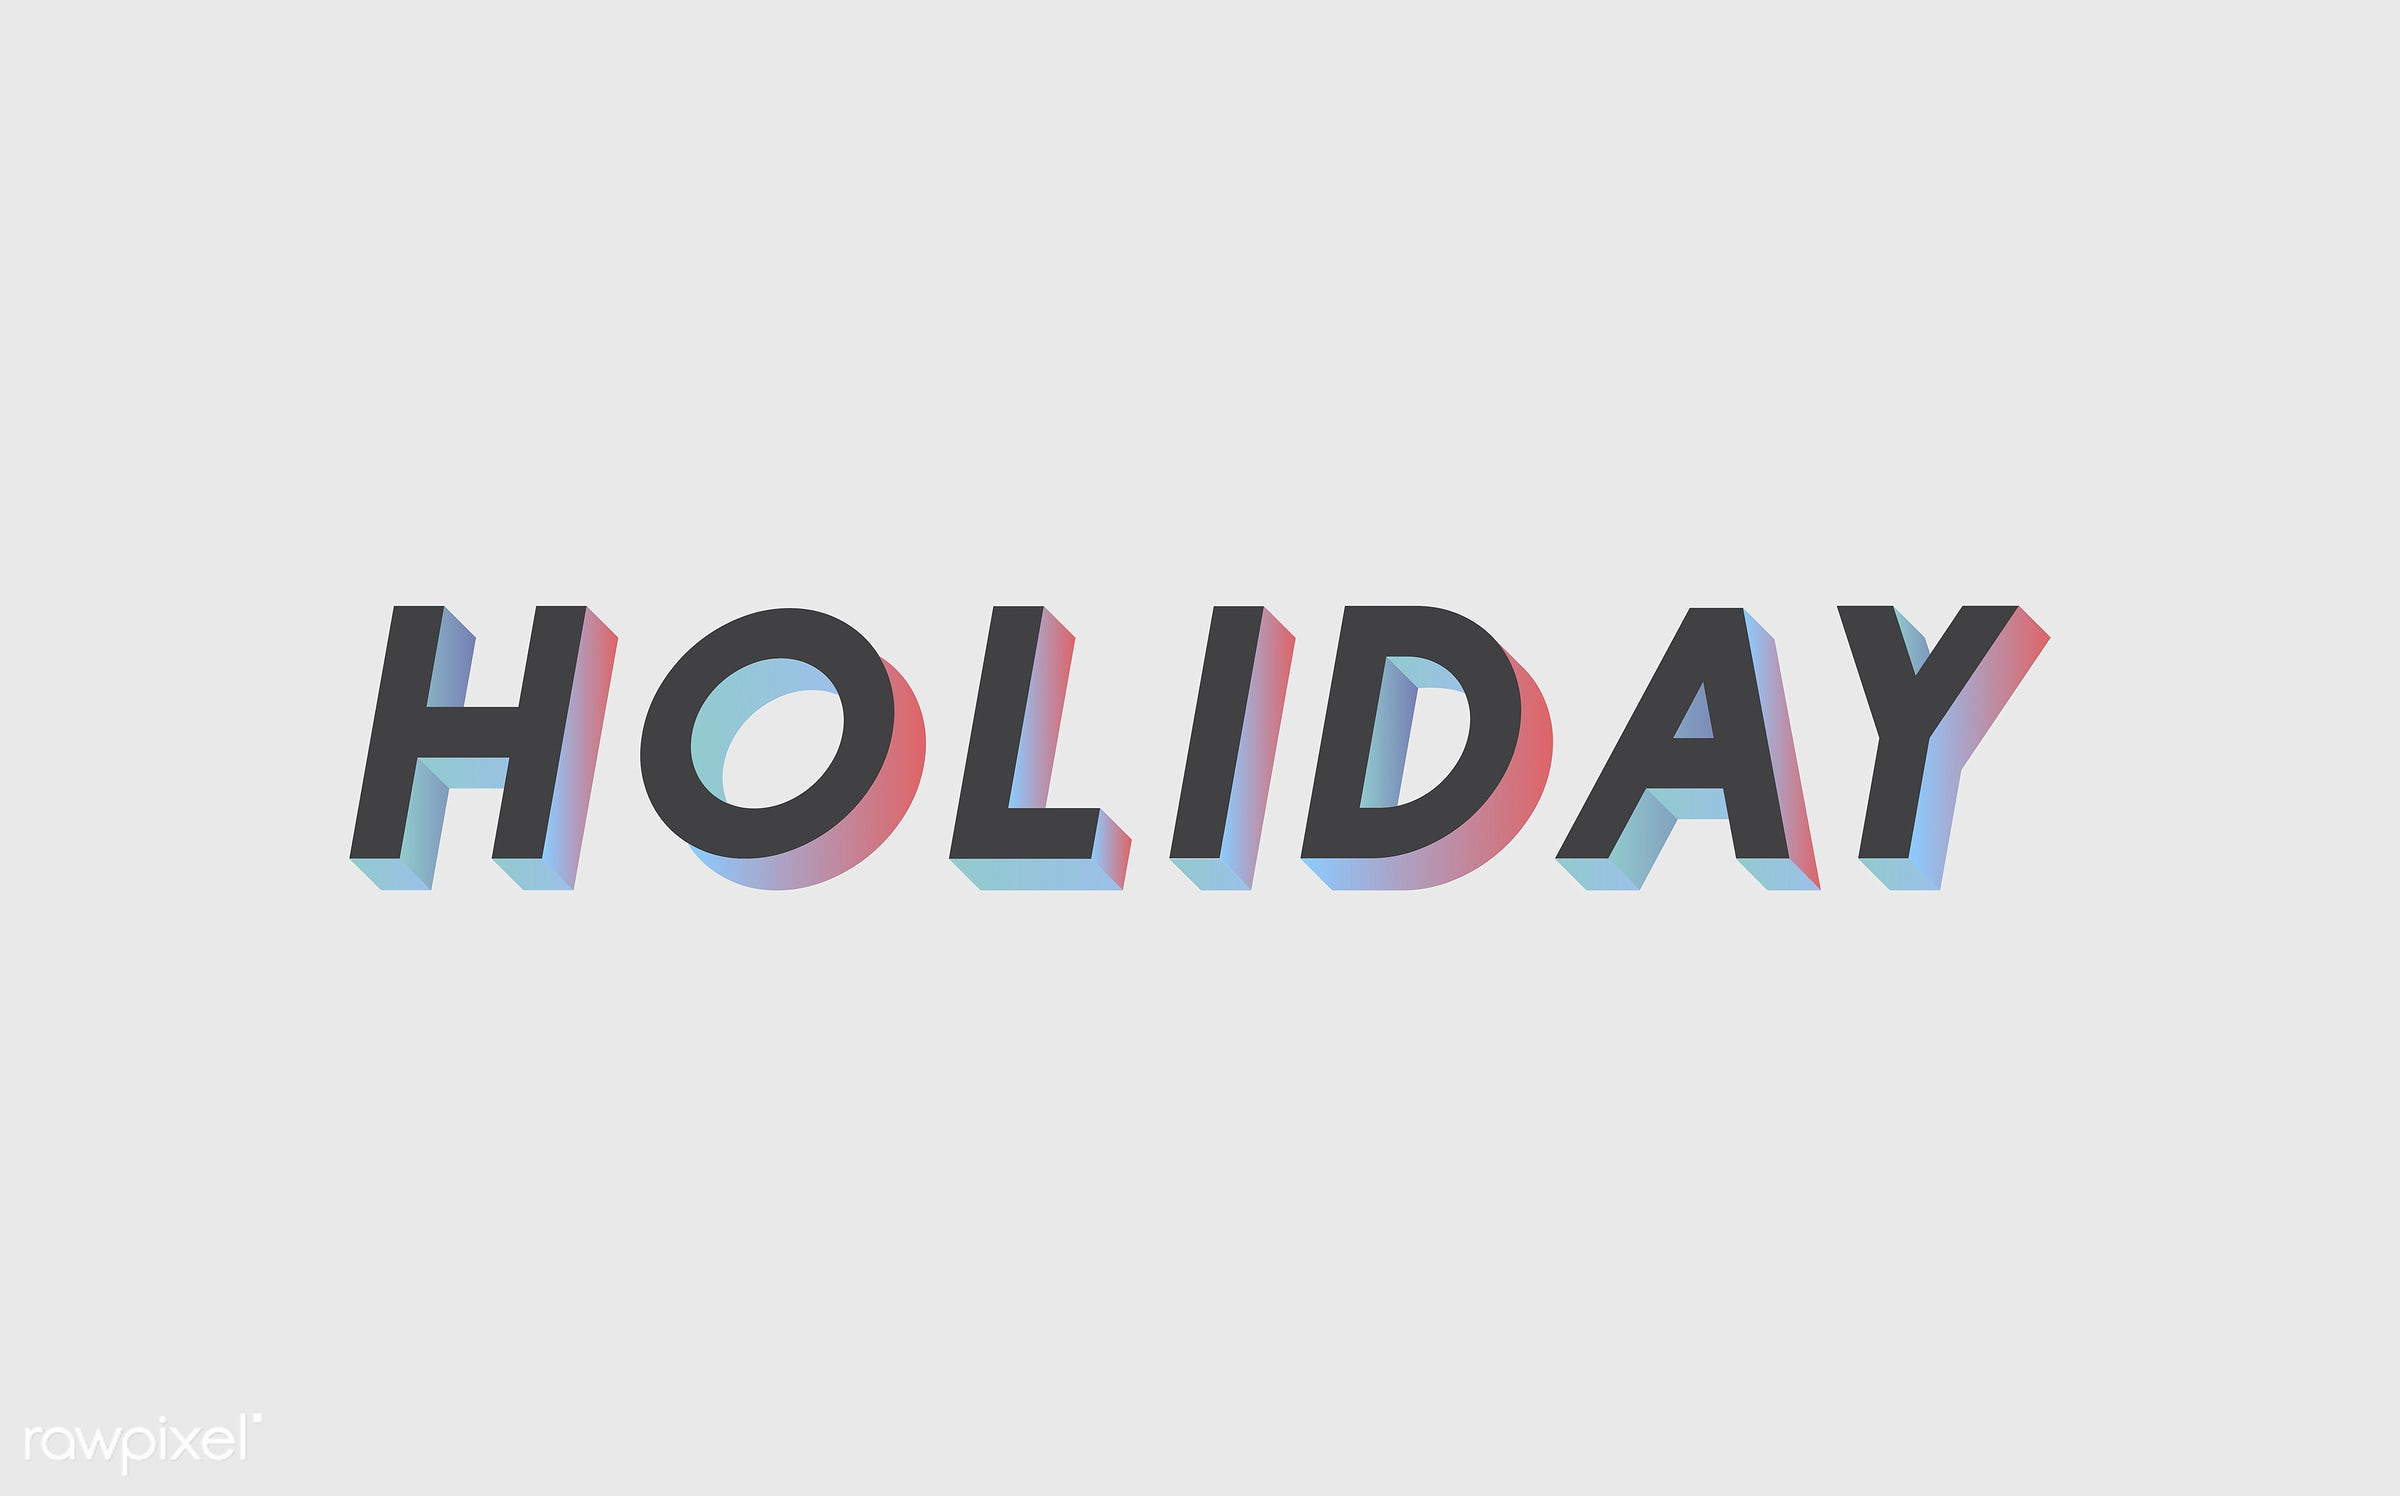 neon, colorful, 3d, three dimensional, vector, illustration, graphic, word, white, black, holiday, vacation